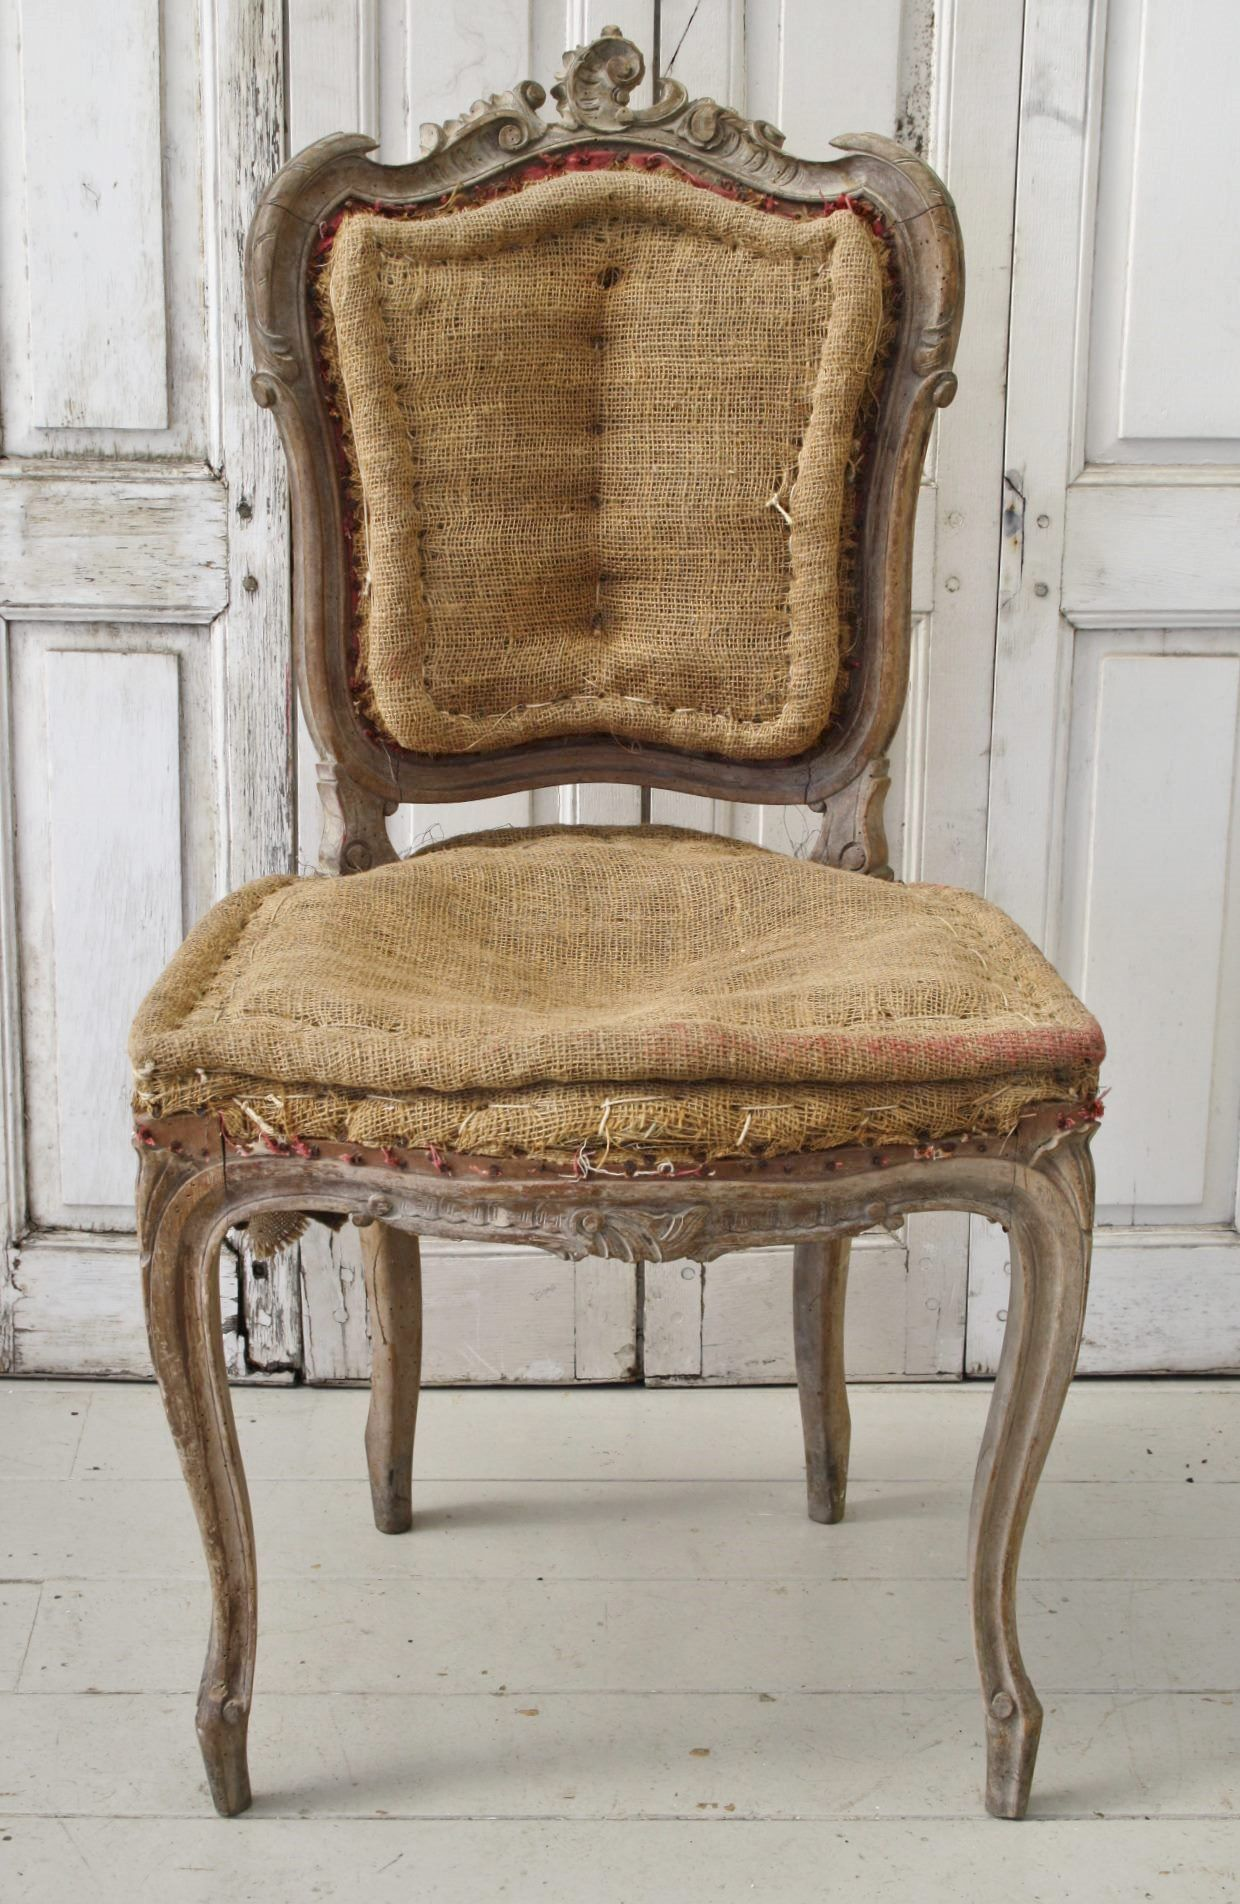 Old French Rococo Chair Rococo Chair Upholstered Chairs Deconstructed Chair